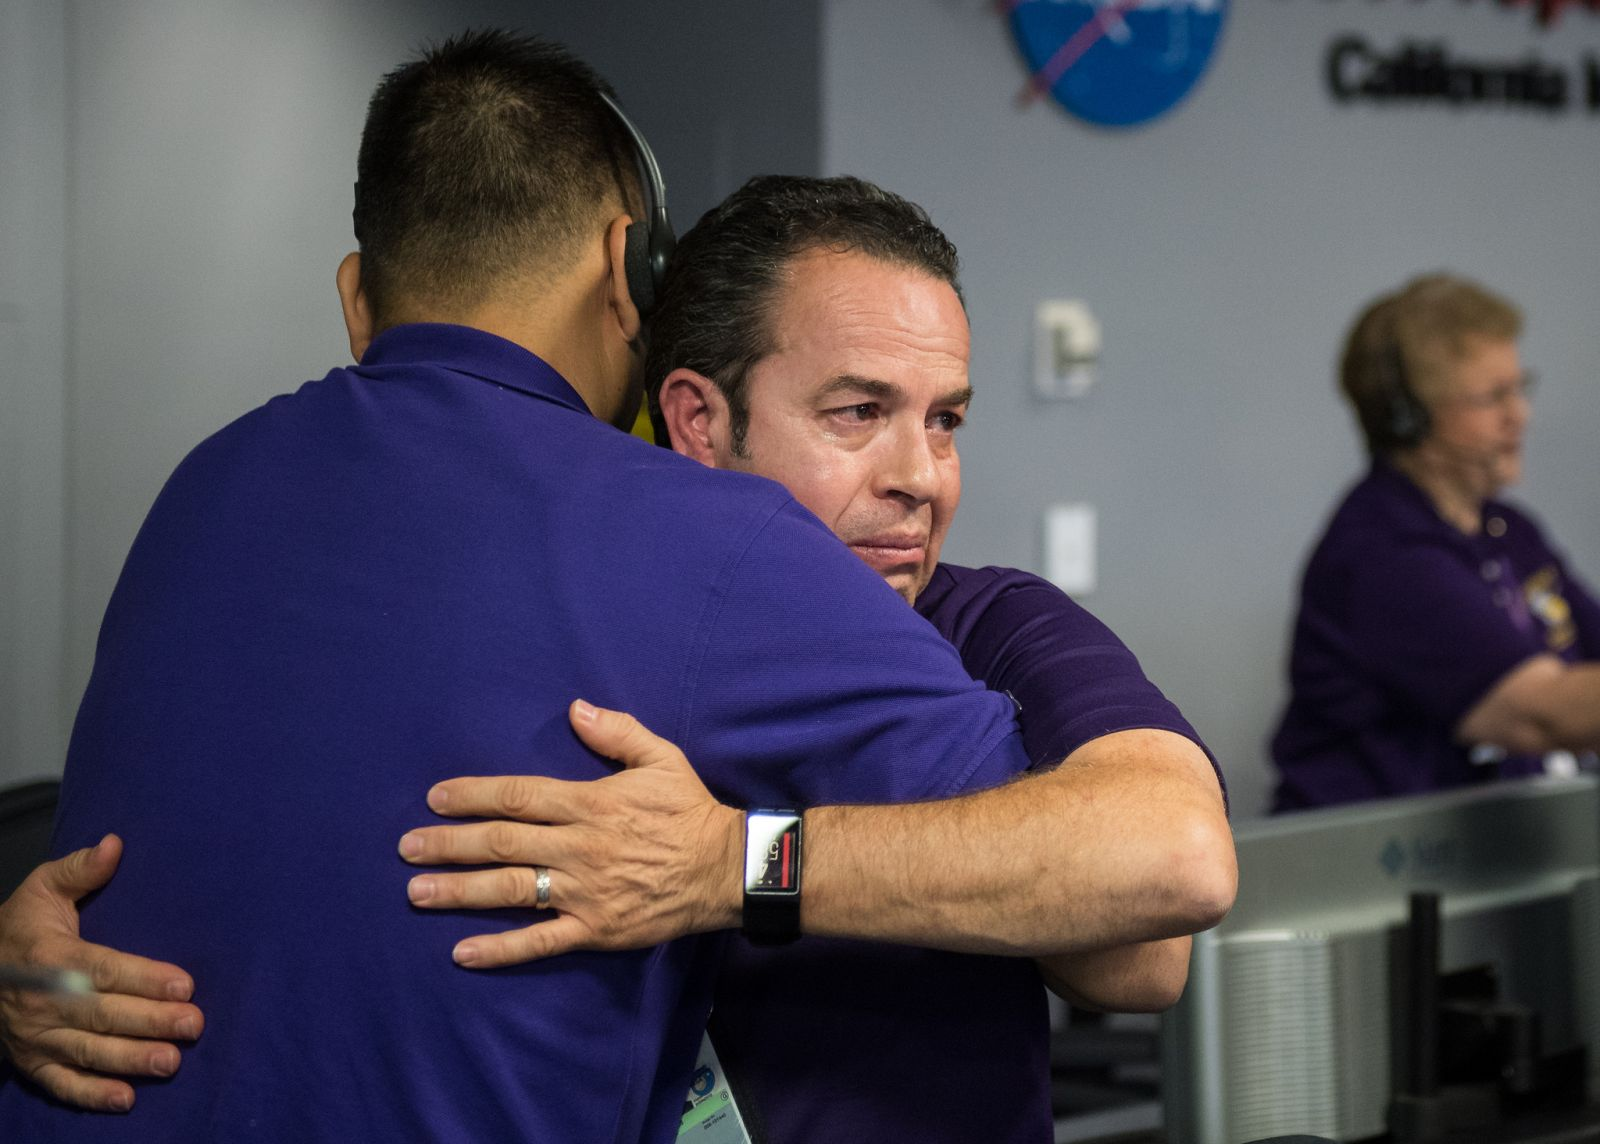 Cassini team mebers embrace after the spacecraft was deliberately plunged into Saturn. Photo and Caption Credit: Joel Kowsky / NASA